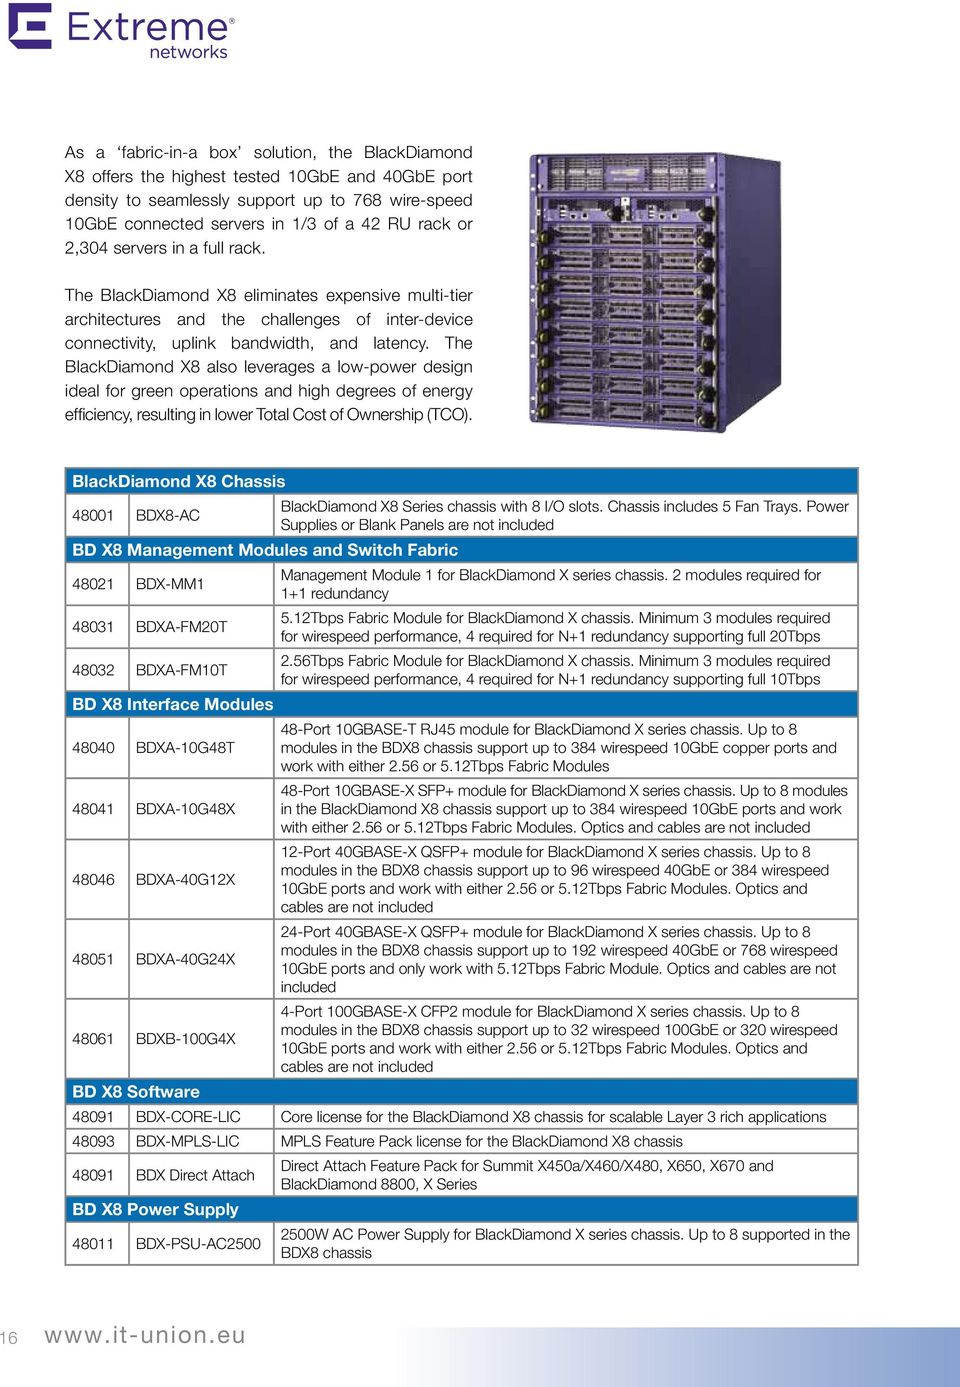 Network Solutions Extreme Networks From Professionals Pdf Magic Mobility X8 Wiring Diagram The Blackdiamond Also Leverages A Low Power Design Ideal For Green Operations And High